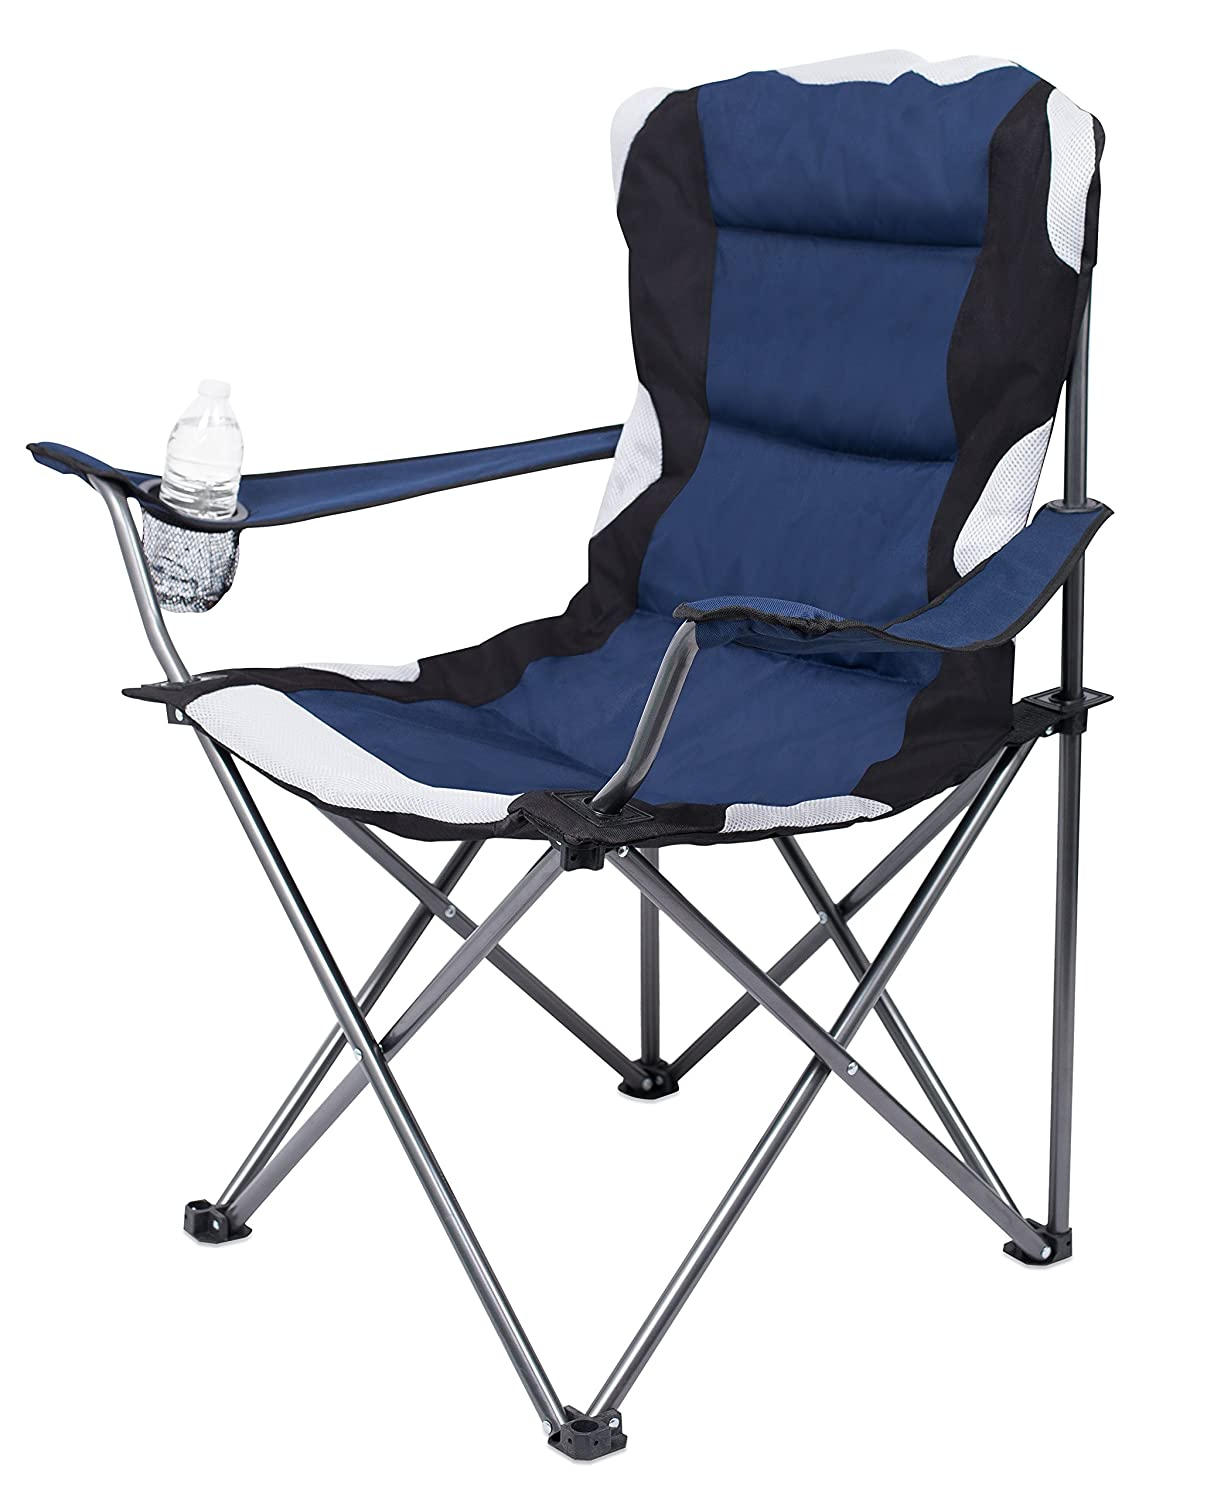 5. Internet's Best Padded Camping Chair